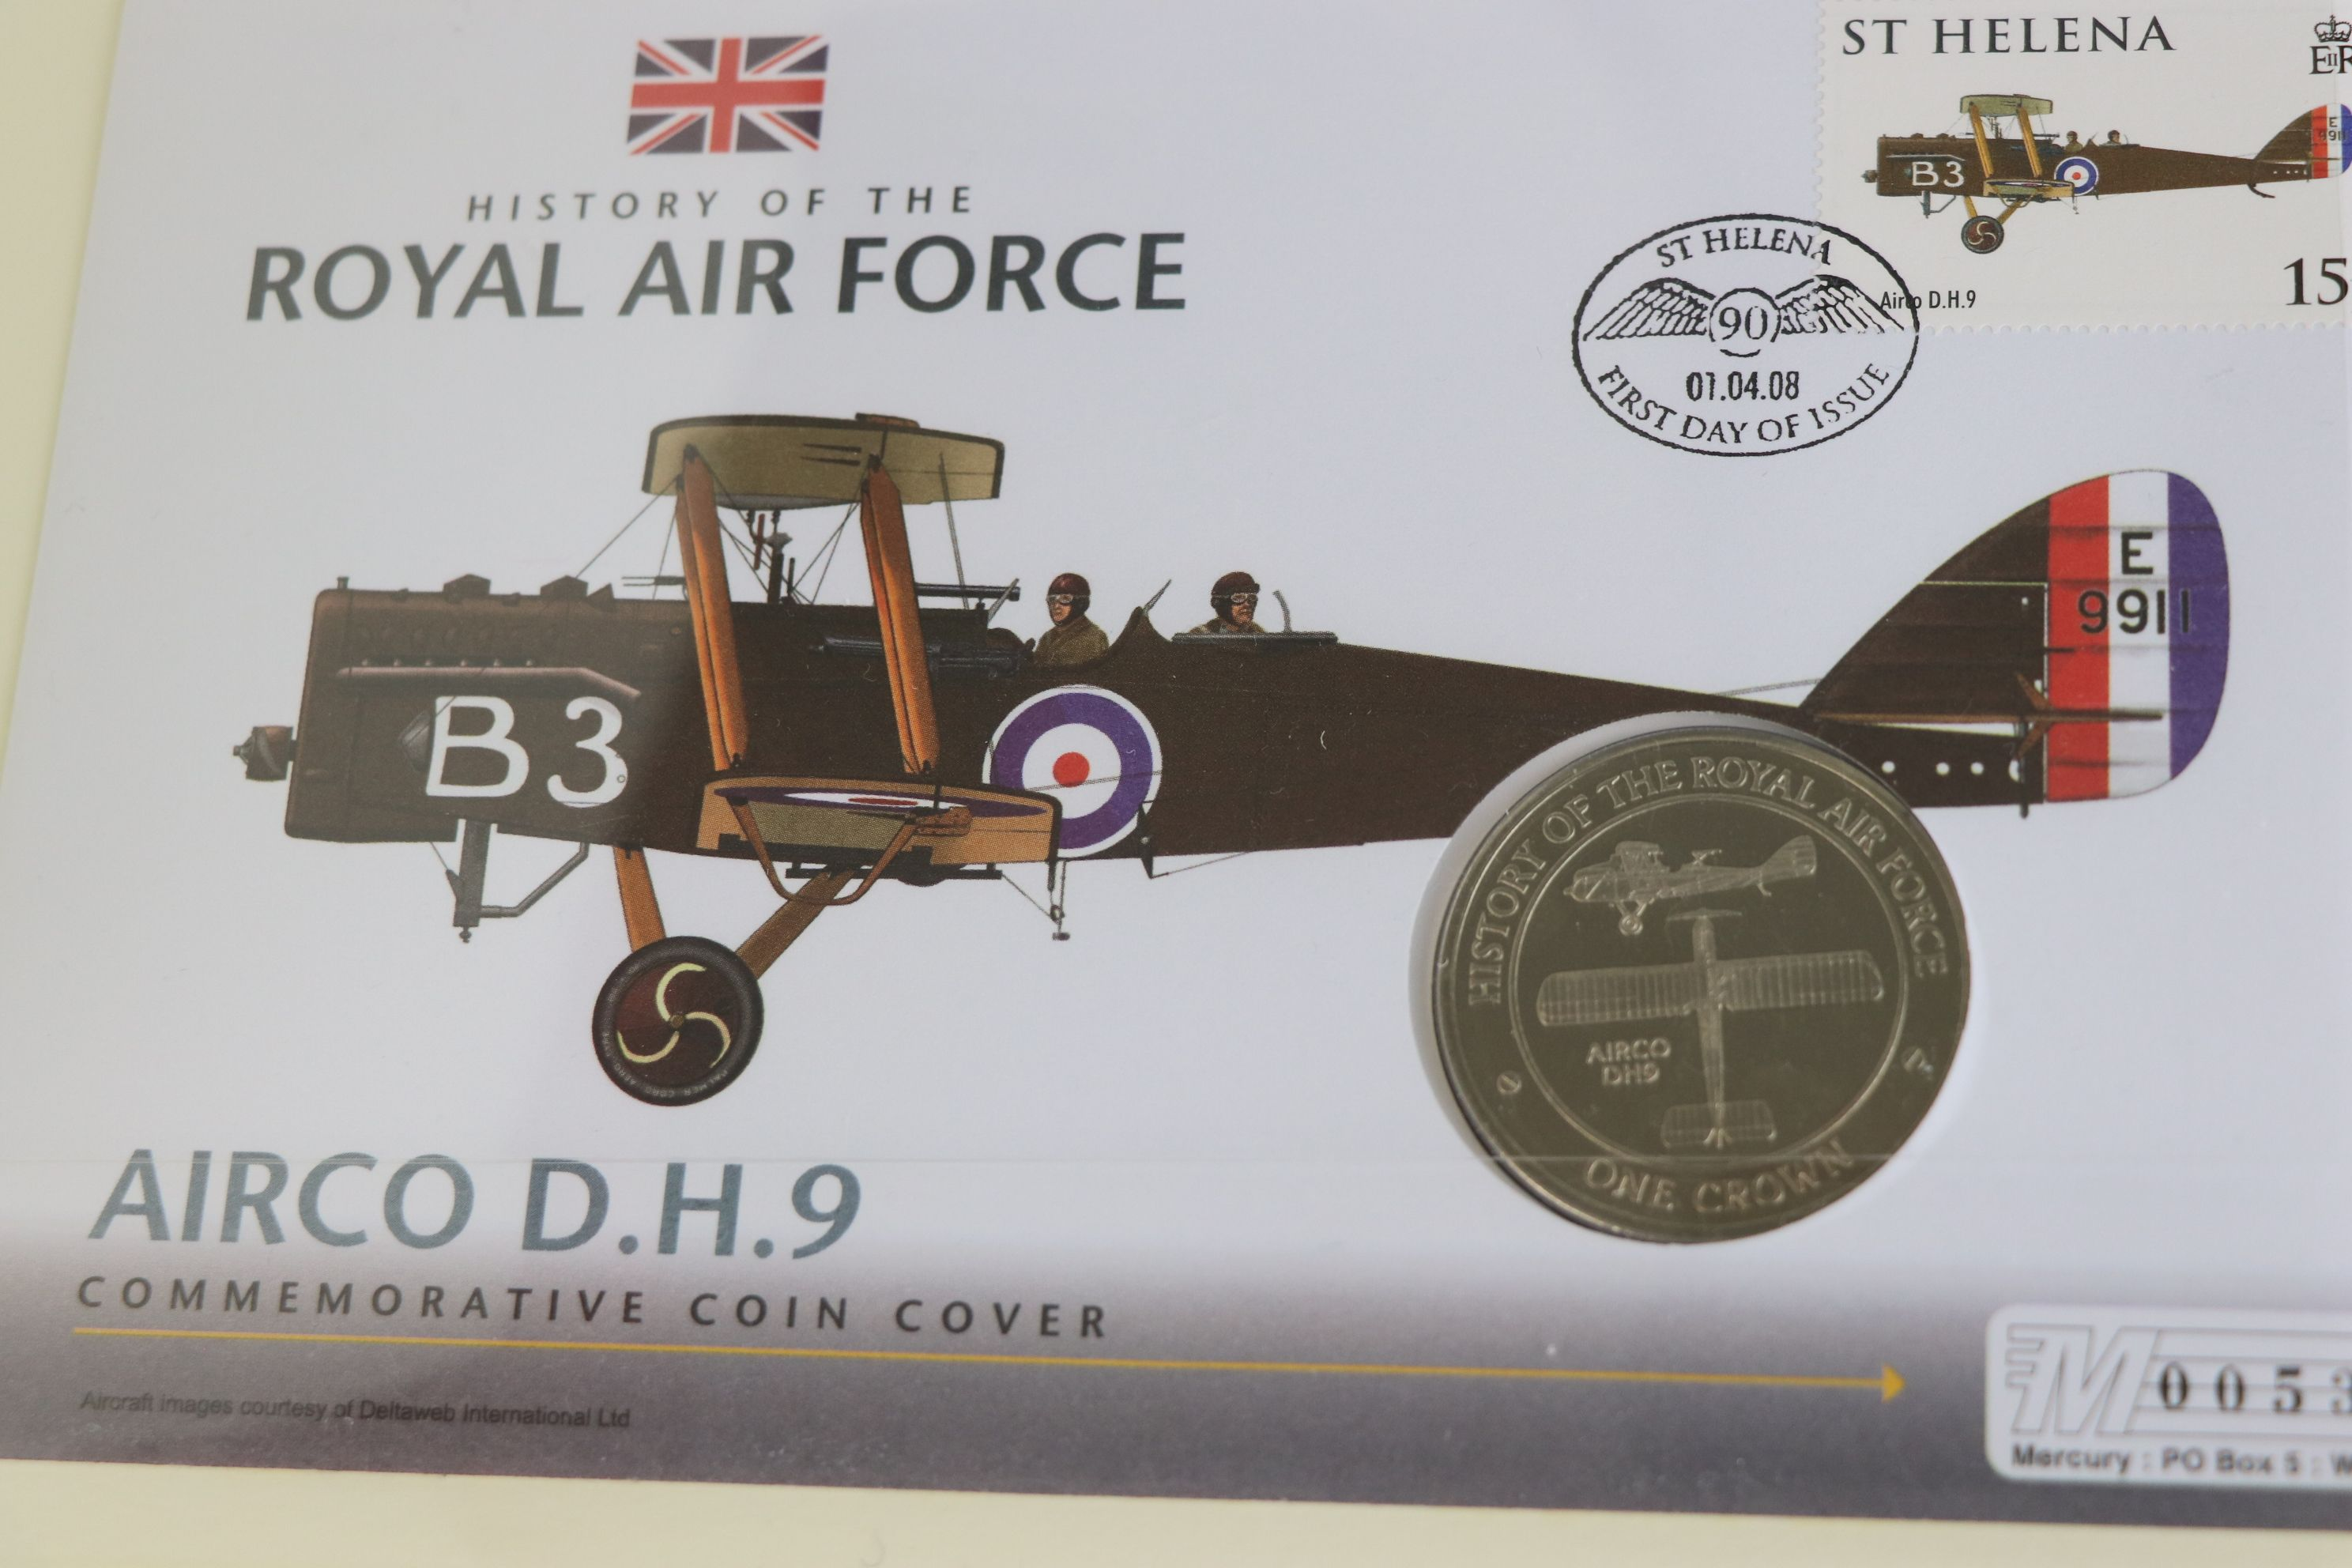 A limited edition Westminster Mint History of the Royal Air Force coin and stamp cover collection to - Image 14 of 16